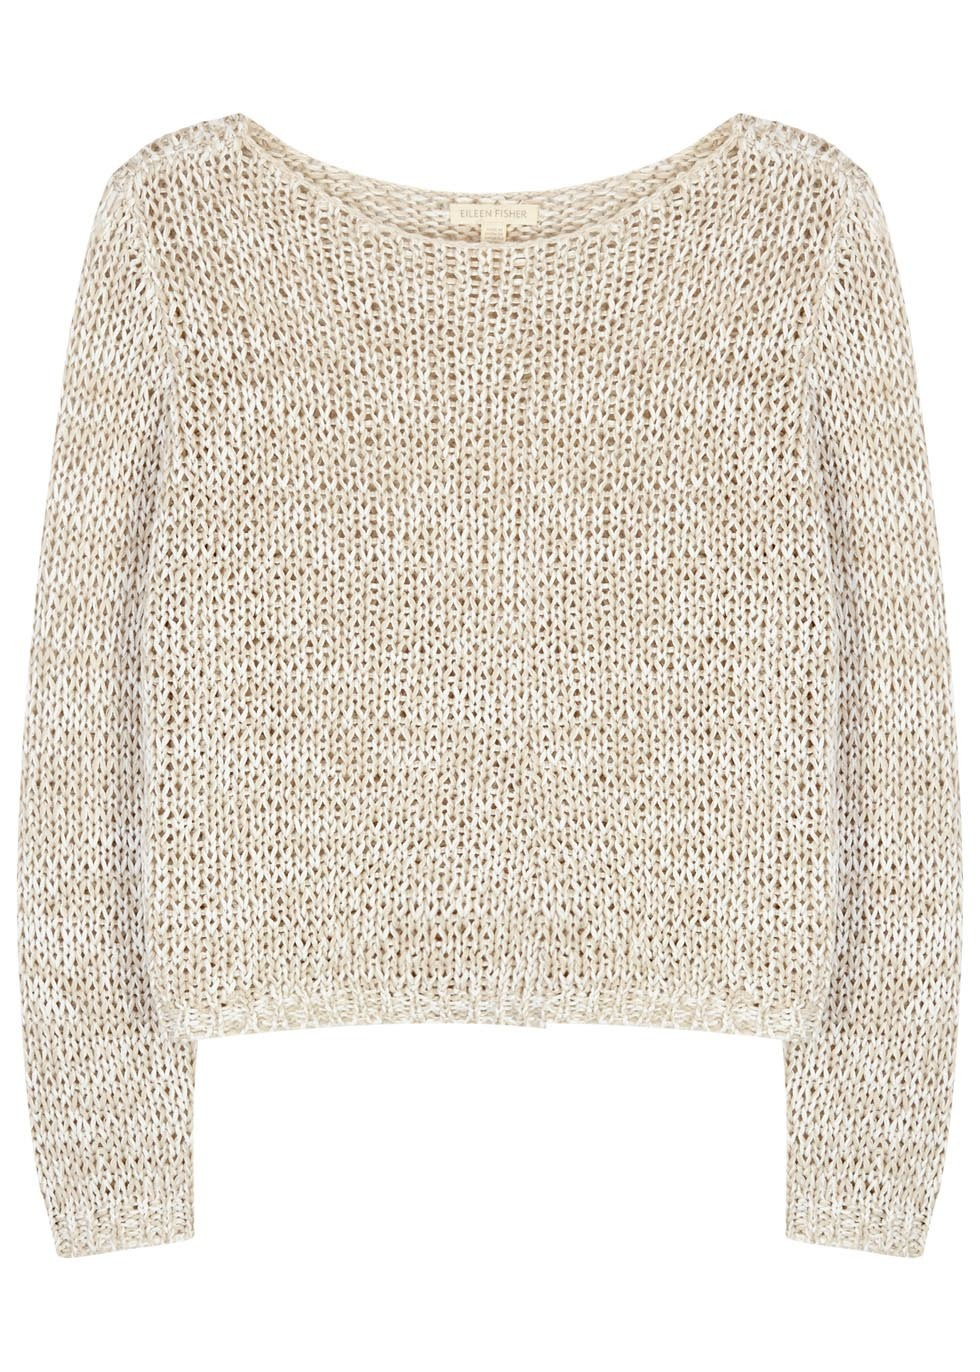 Stone Open Knit Organic Cotton Jumper - neckline: round neck; pattern: plain; style: standard; predominant colour: stone; occasions: casual, creative work; length: standard; fibres: cotton - mix; fit: standard fit; sleeve length: long sleeve; sleeve style: standard; texture group: knits/crochet; pattern type: knitted - other; season: s/s 2016; wardrobe: basic